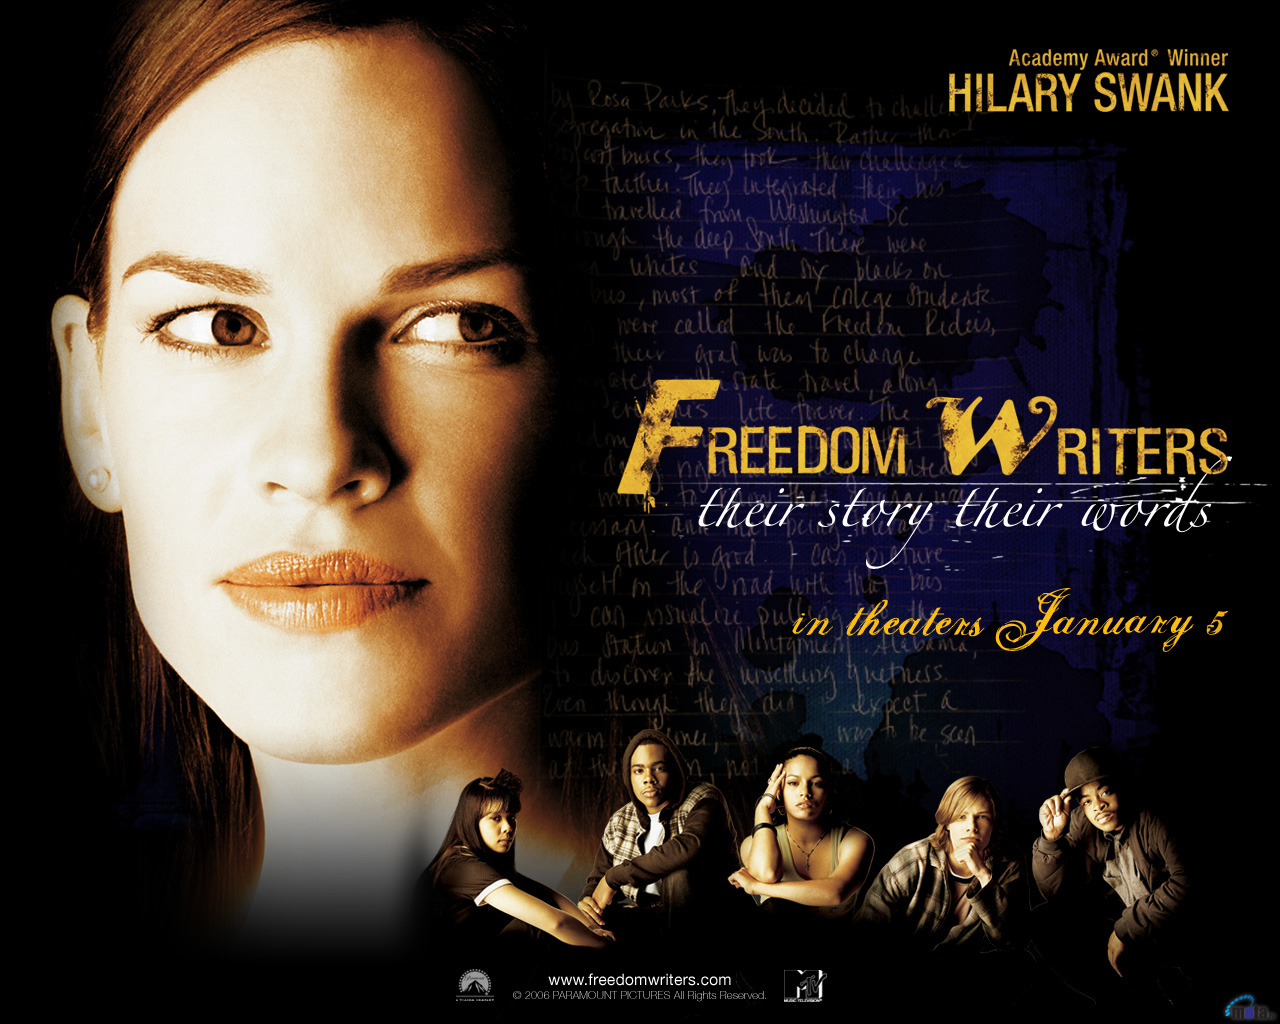 the freedom writers The freedom writers diary by freedom writers, 9780385494229, available at book depository with free delivery worldwide.